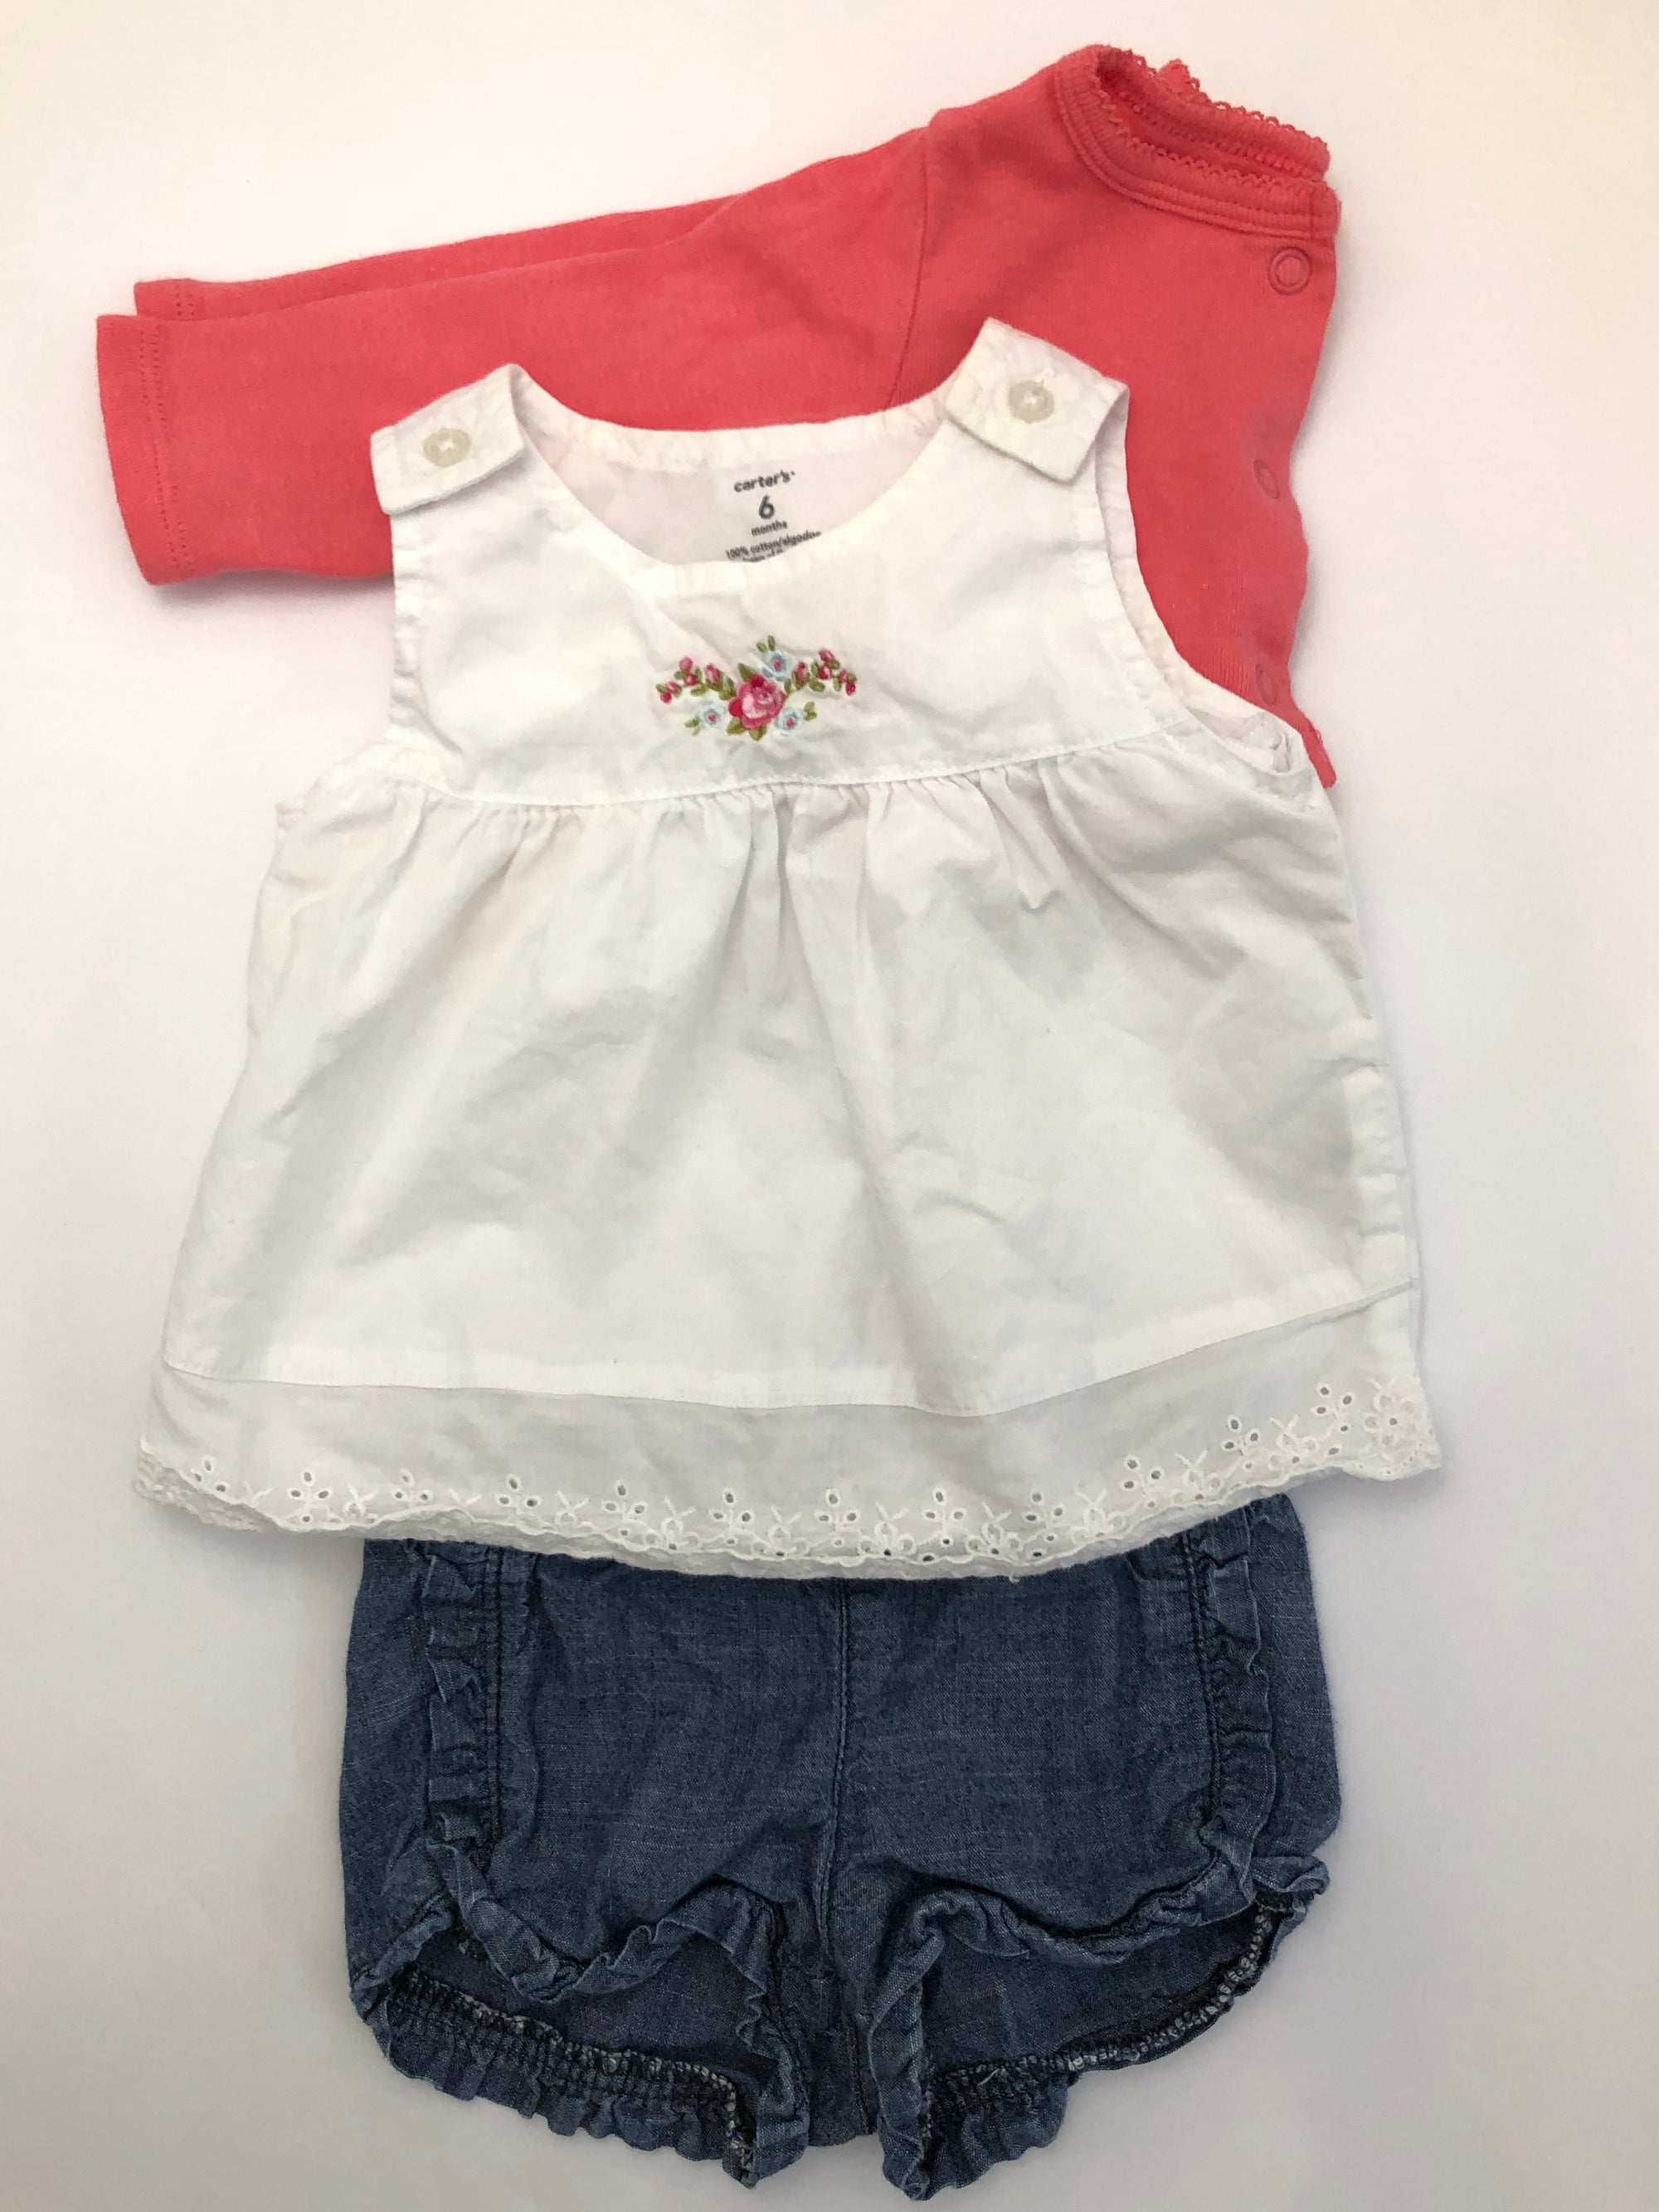 Resale 6 m Carter's Embroidered Floral Top, Denim Shorts & Pink Cardigan Set